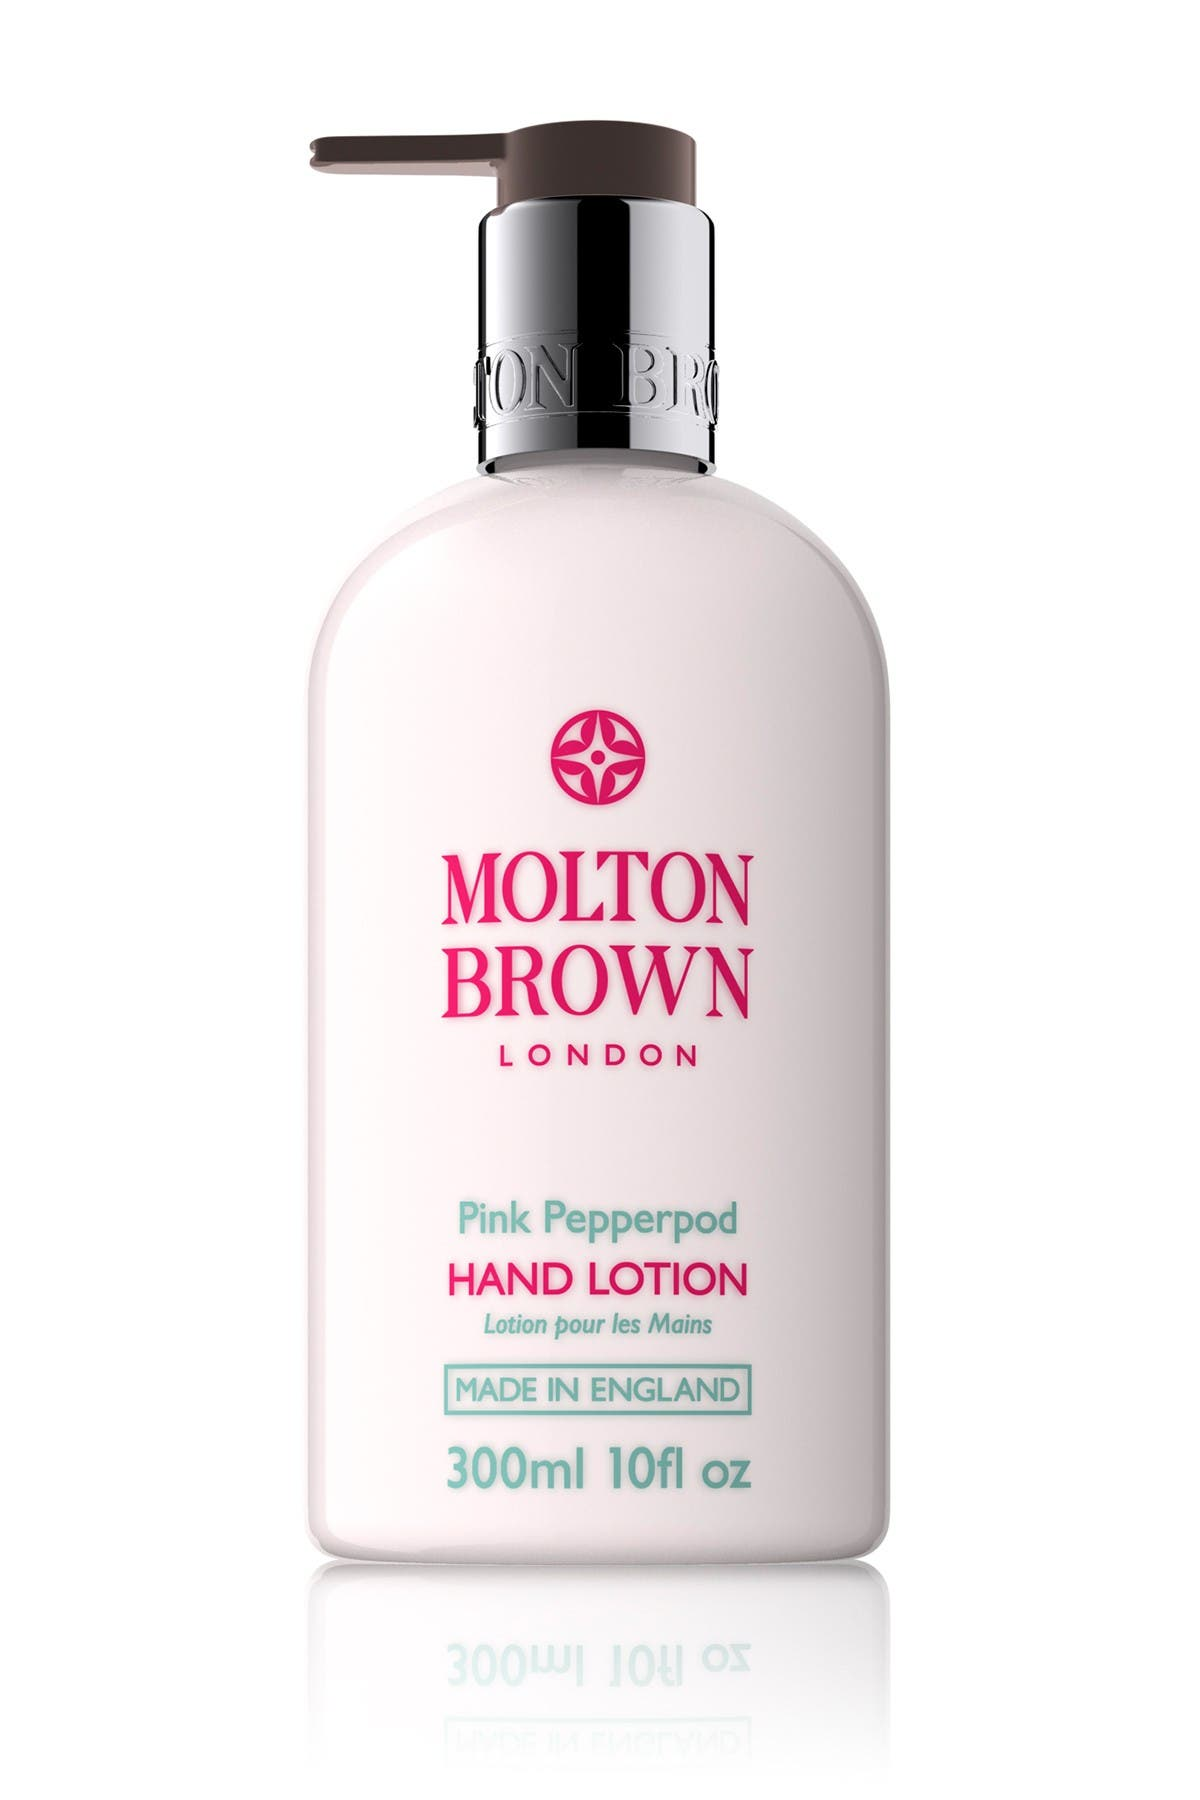 Image of Molton Brown Pink Pepperpod Hand Lotion